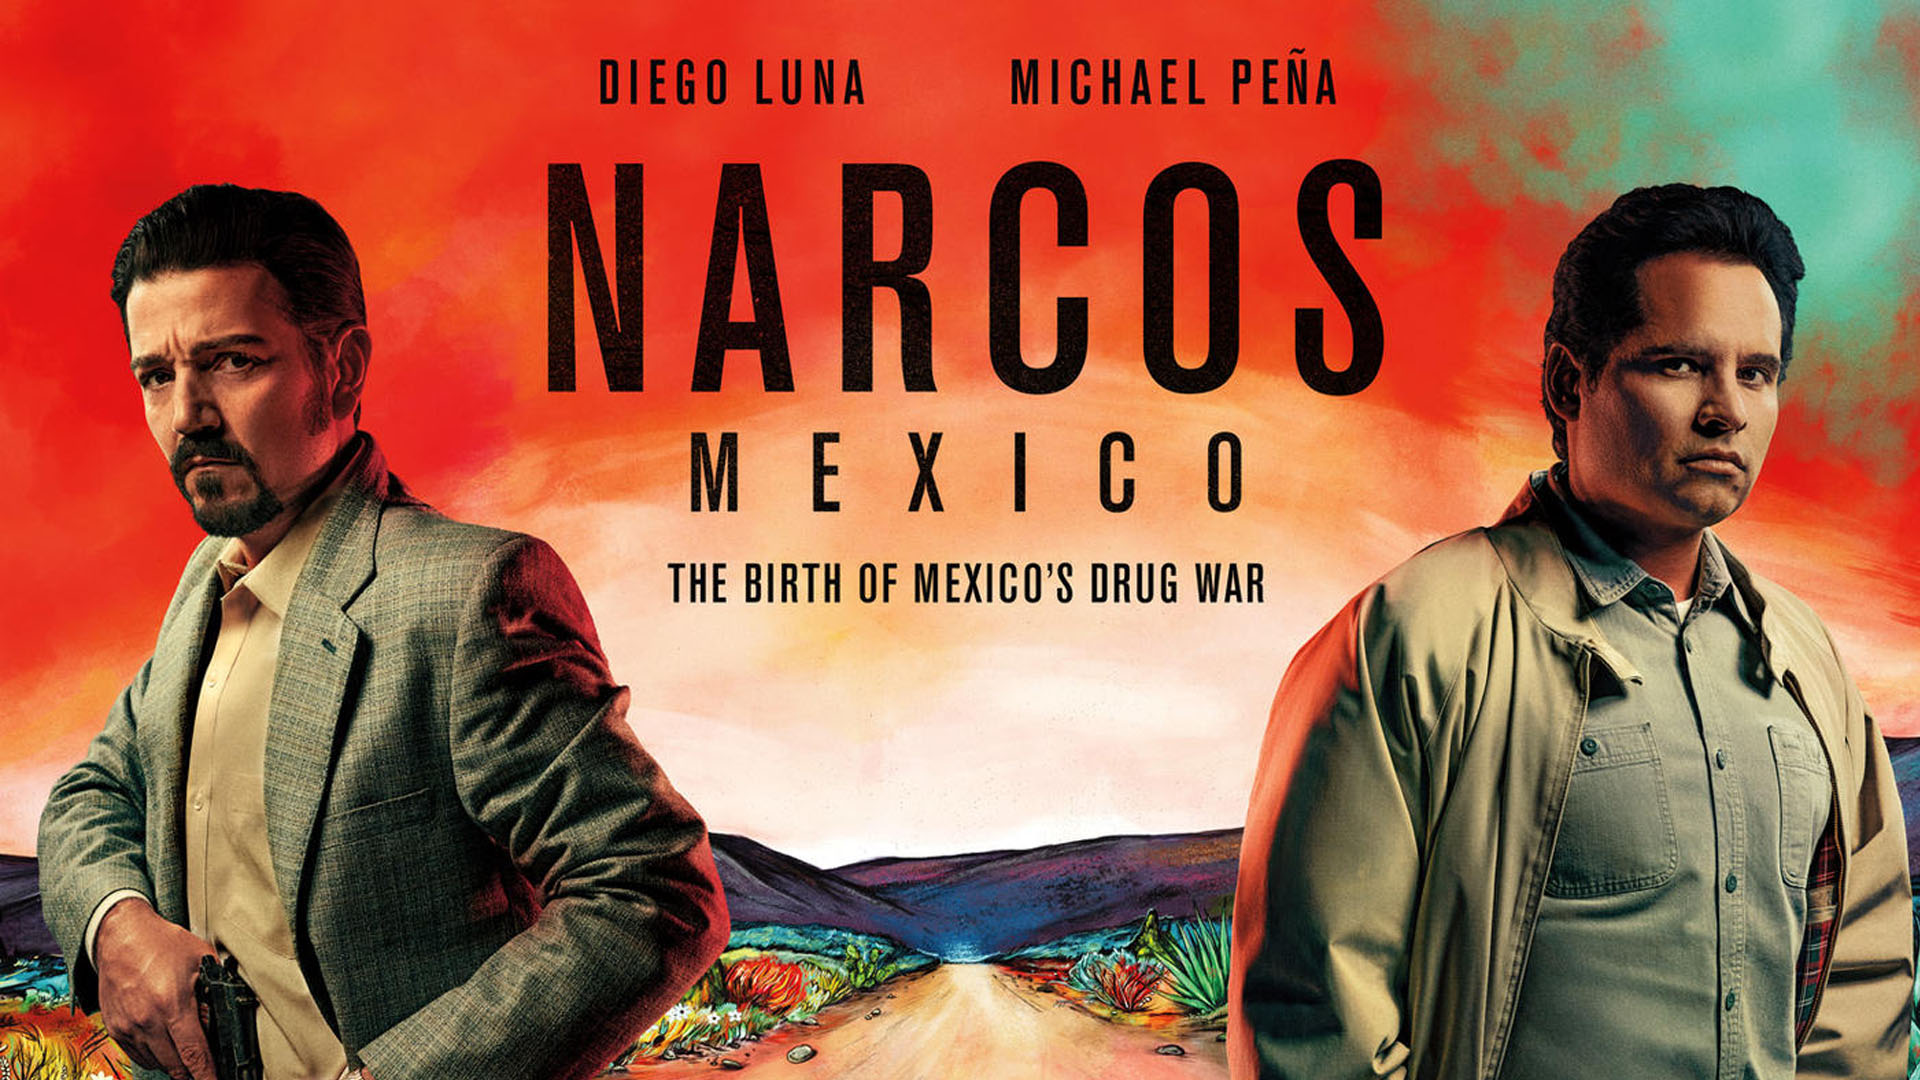 Narcos Mexico TV Show Wallpaper 65940 1920x1080px 1920x1080